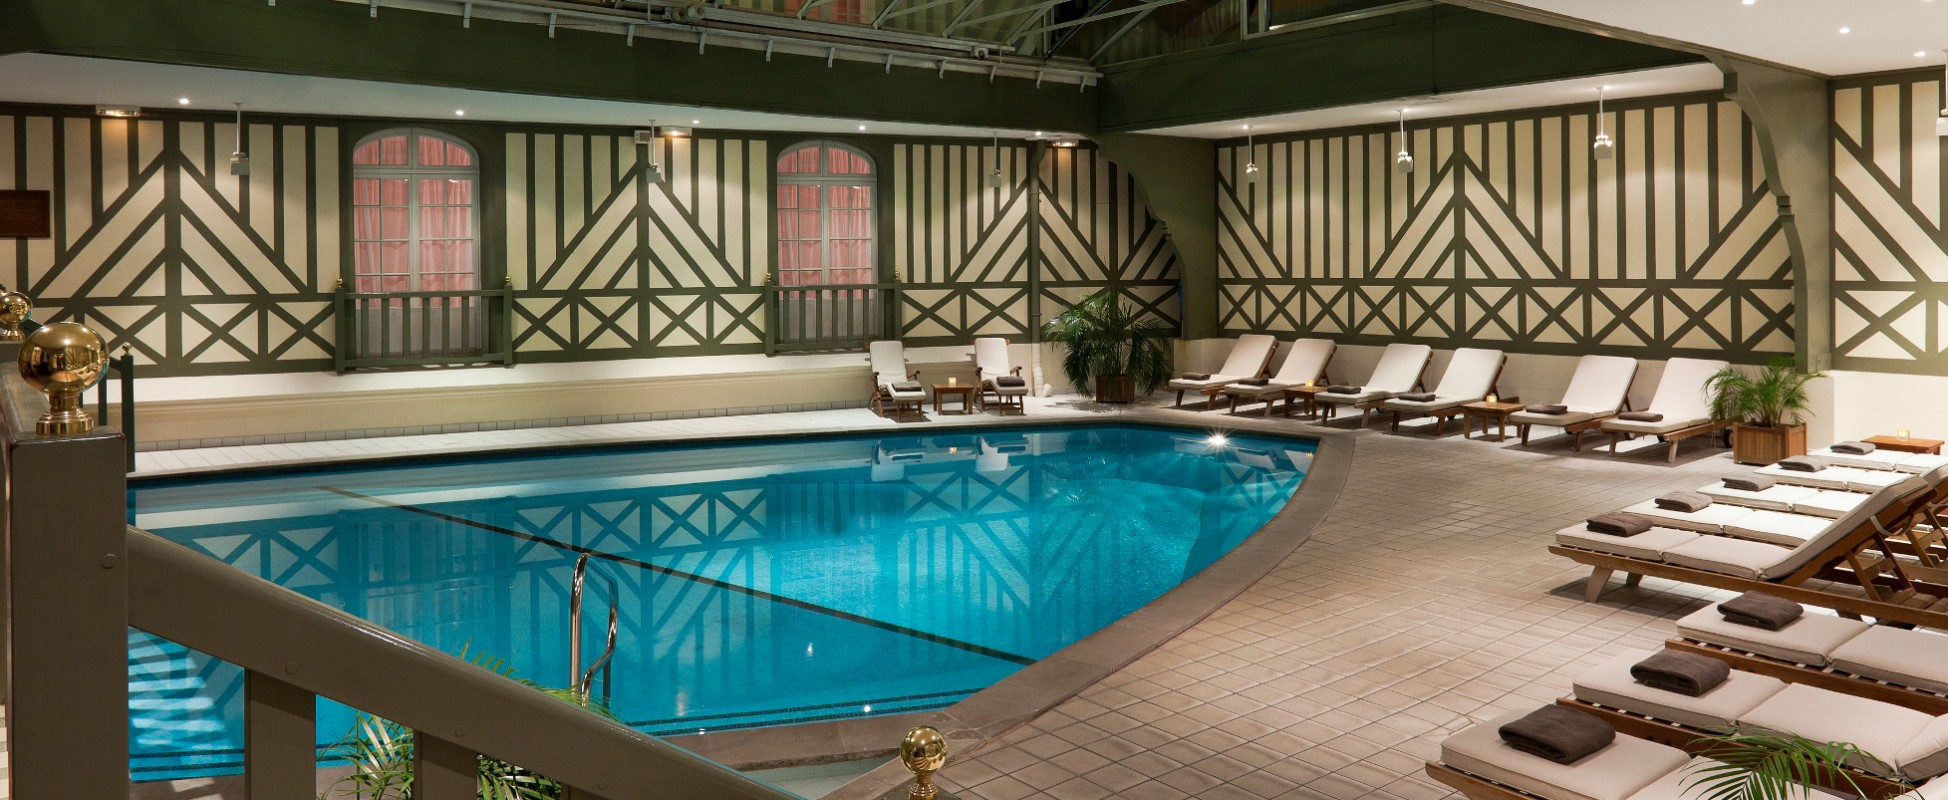 Spa Diane Barriere Hotel Normandy Deauville Spaetc Fr